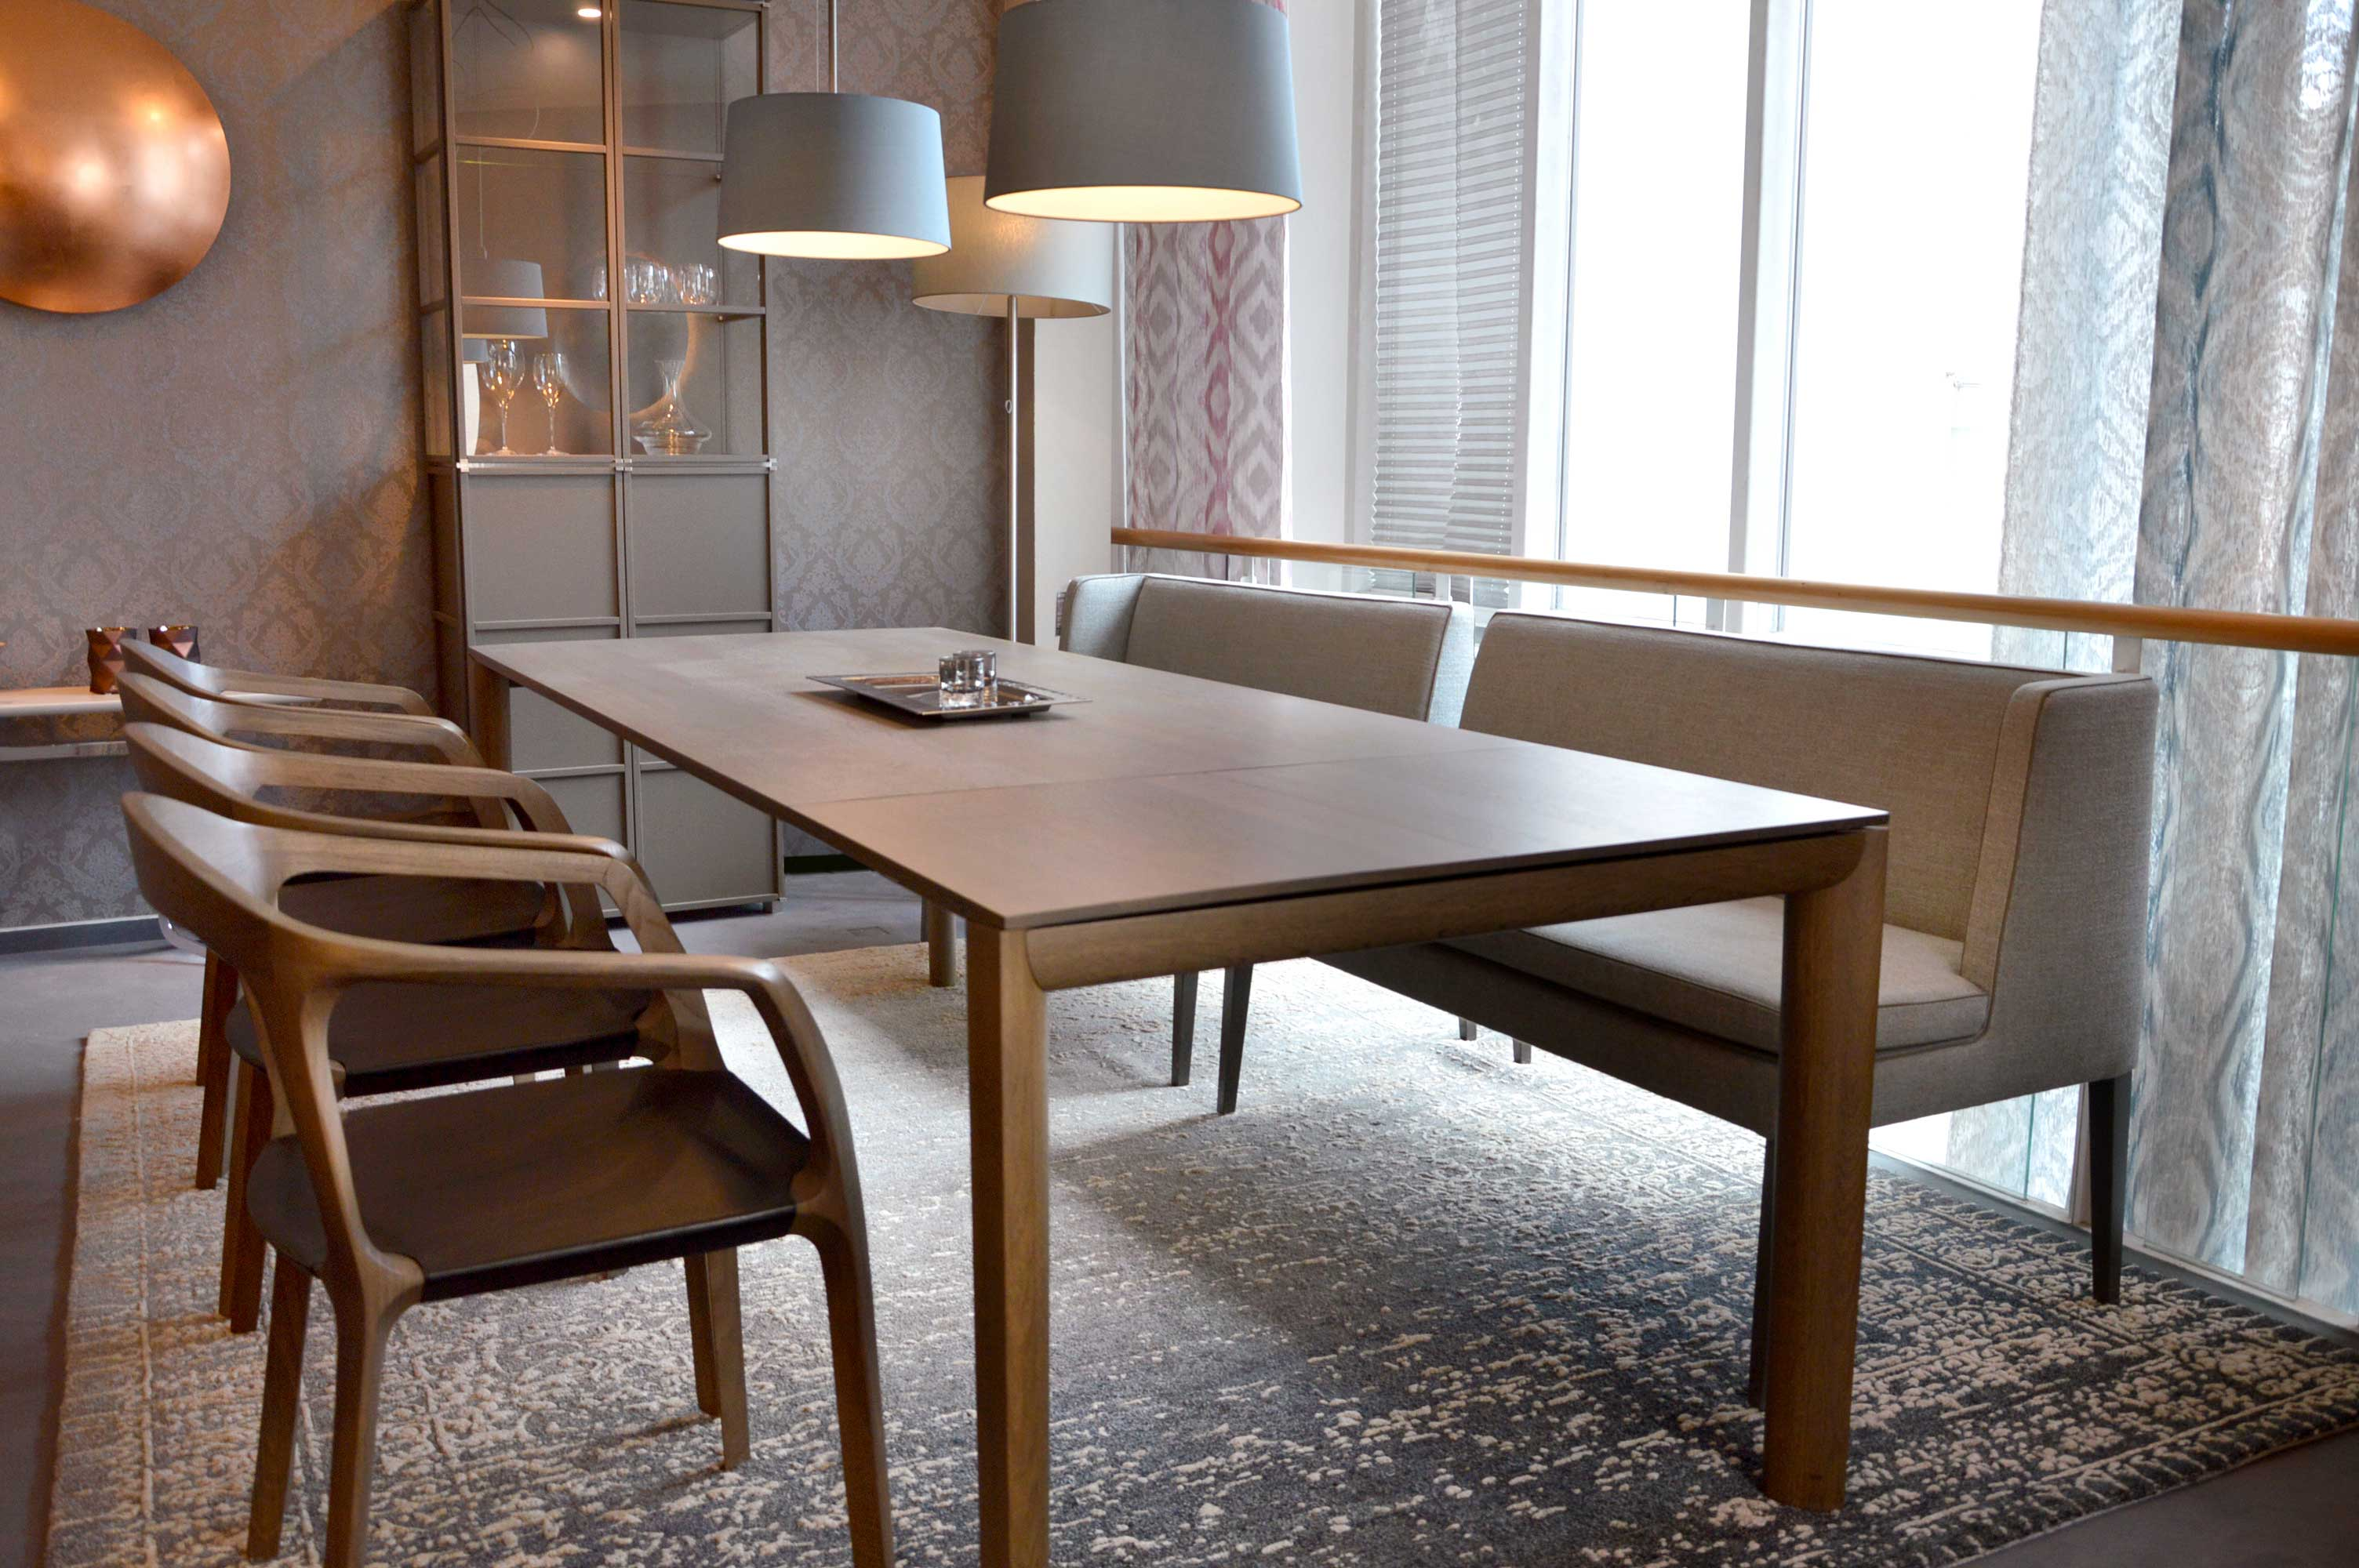 Designfunktion Essen design funktion essen hubhausdesign co